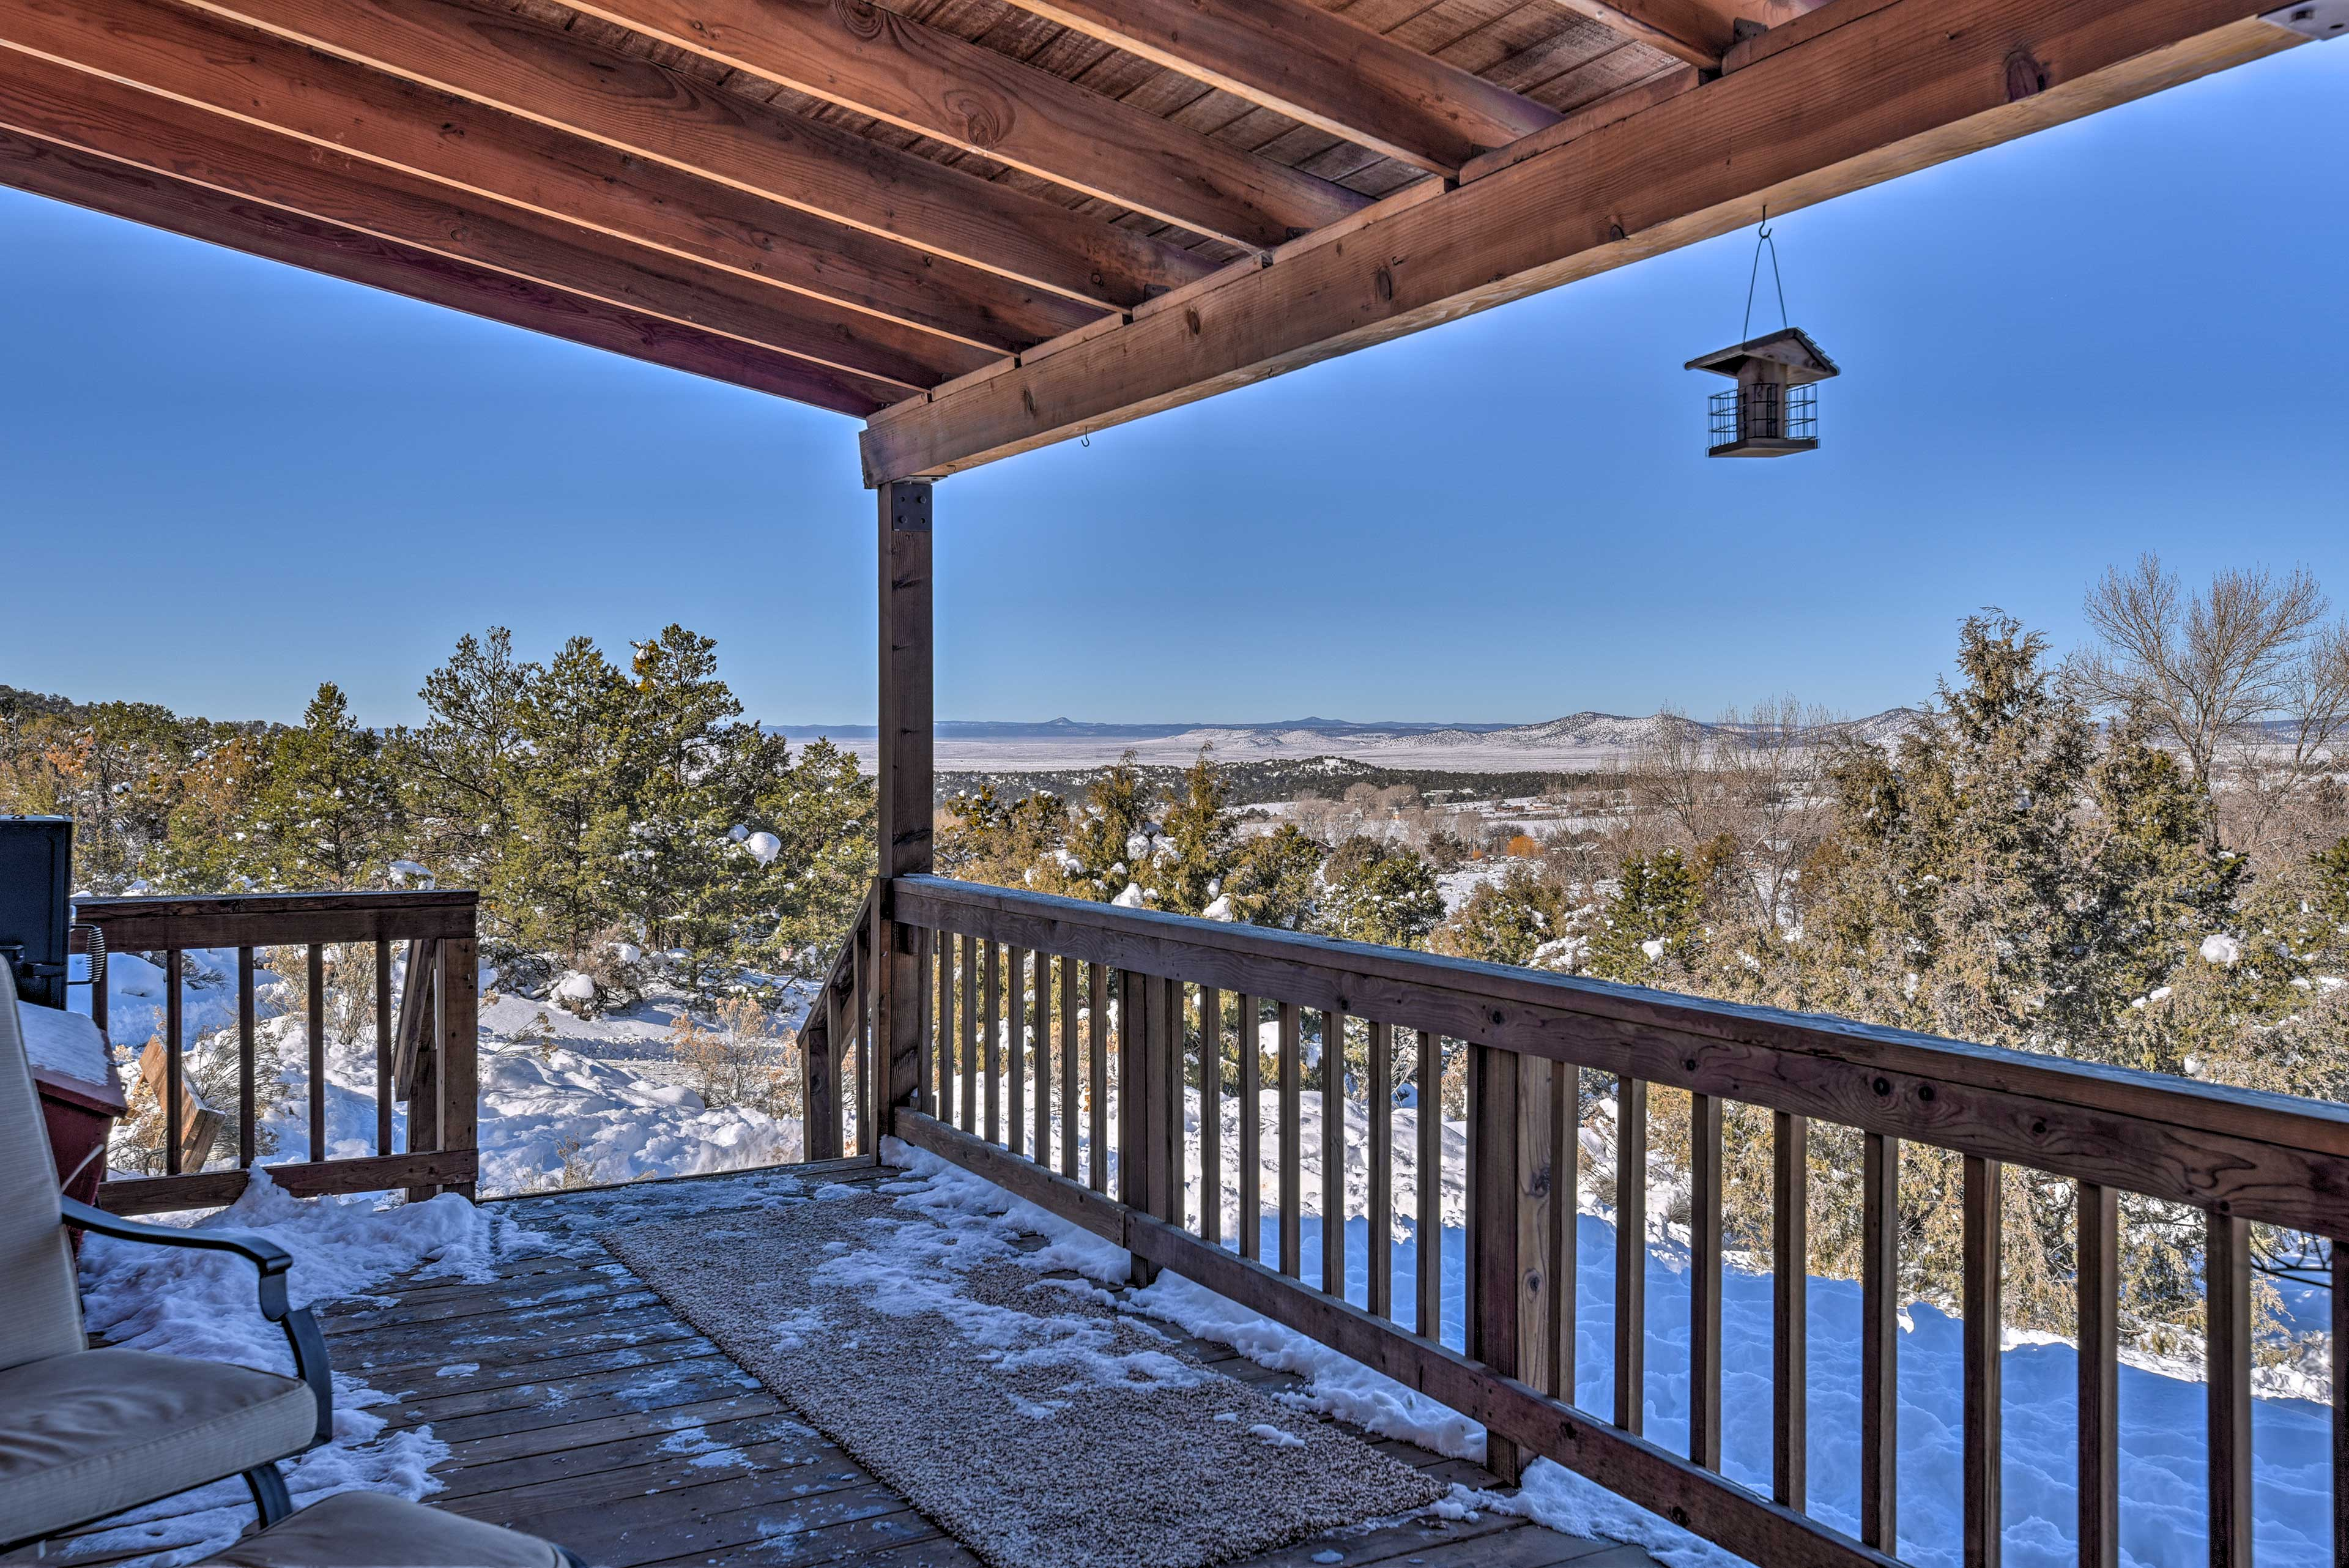 Relax on the patio furniture year-round and enjoy the beautiful New Mexico views.